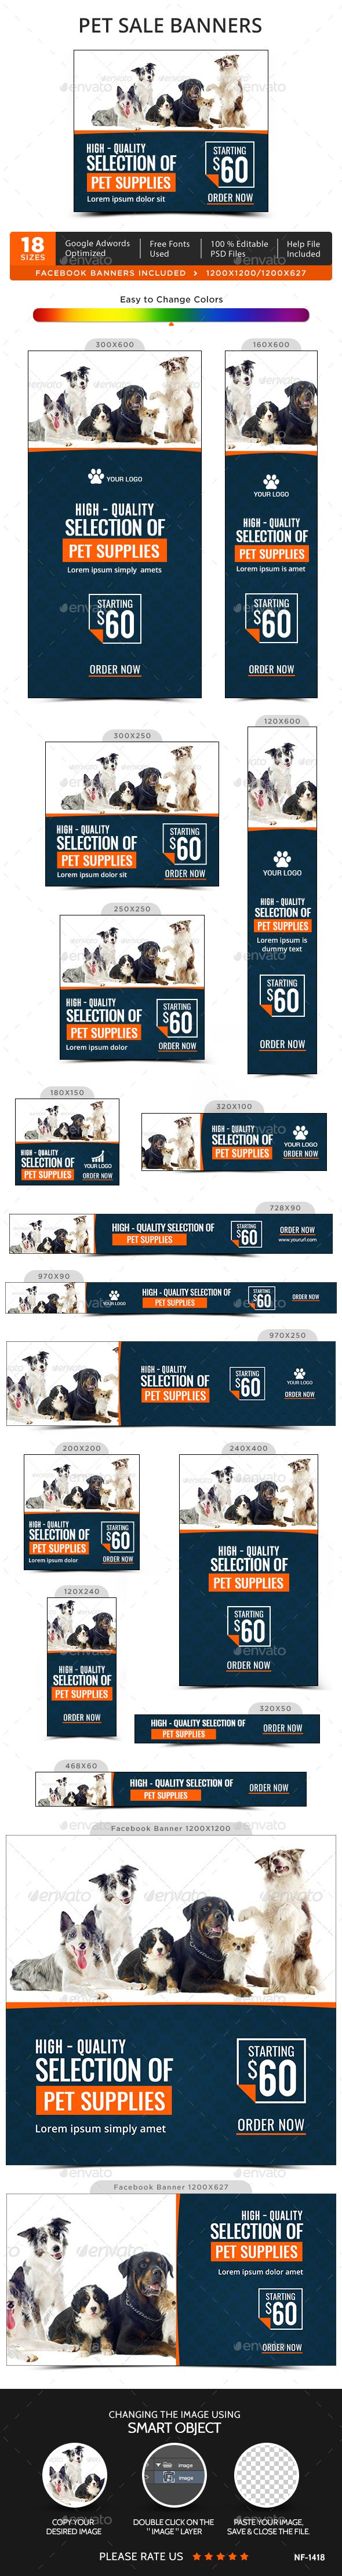 Pet Sale Banners Design Template - Banners & Ads Web Template PSD. Download here: https://graphicriver.net/item/pet-sale-banners/17076219?s_rank=276&ref=yinkira